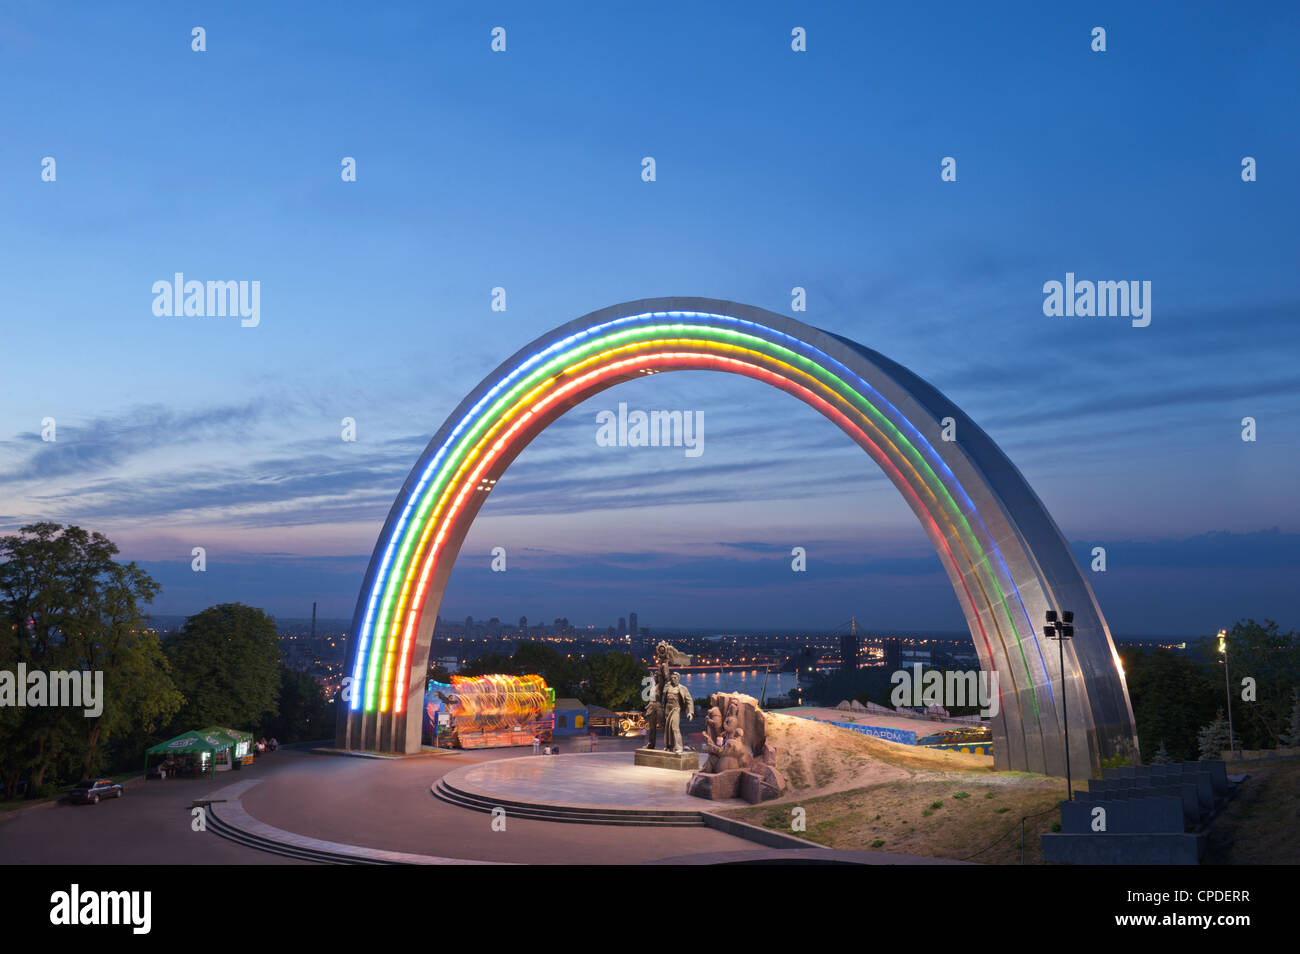 Rainbow Arch, Friendship of Nations Monument, Kiev, Ukraine, Europe Stock Photo